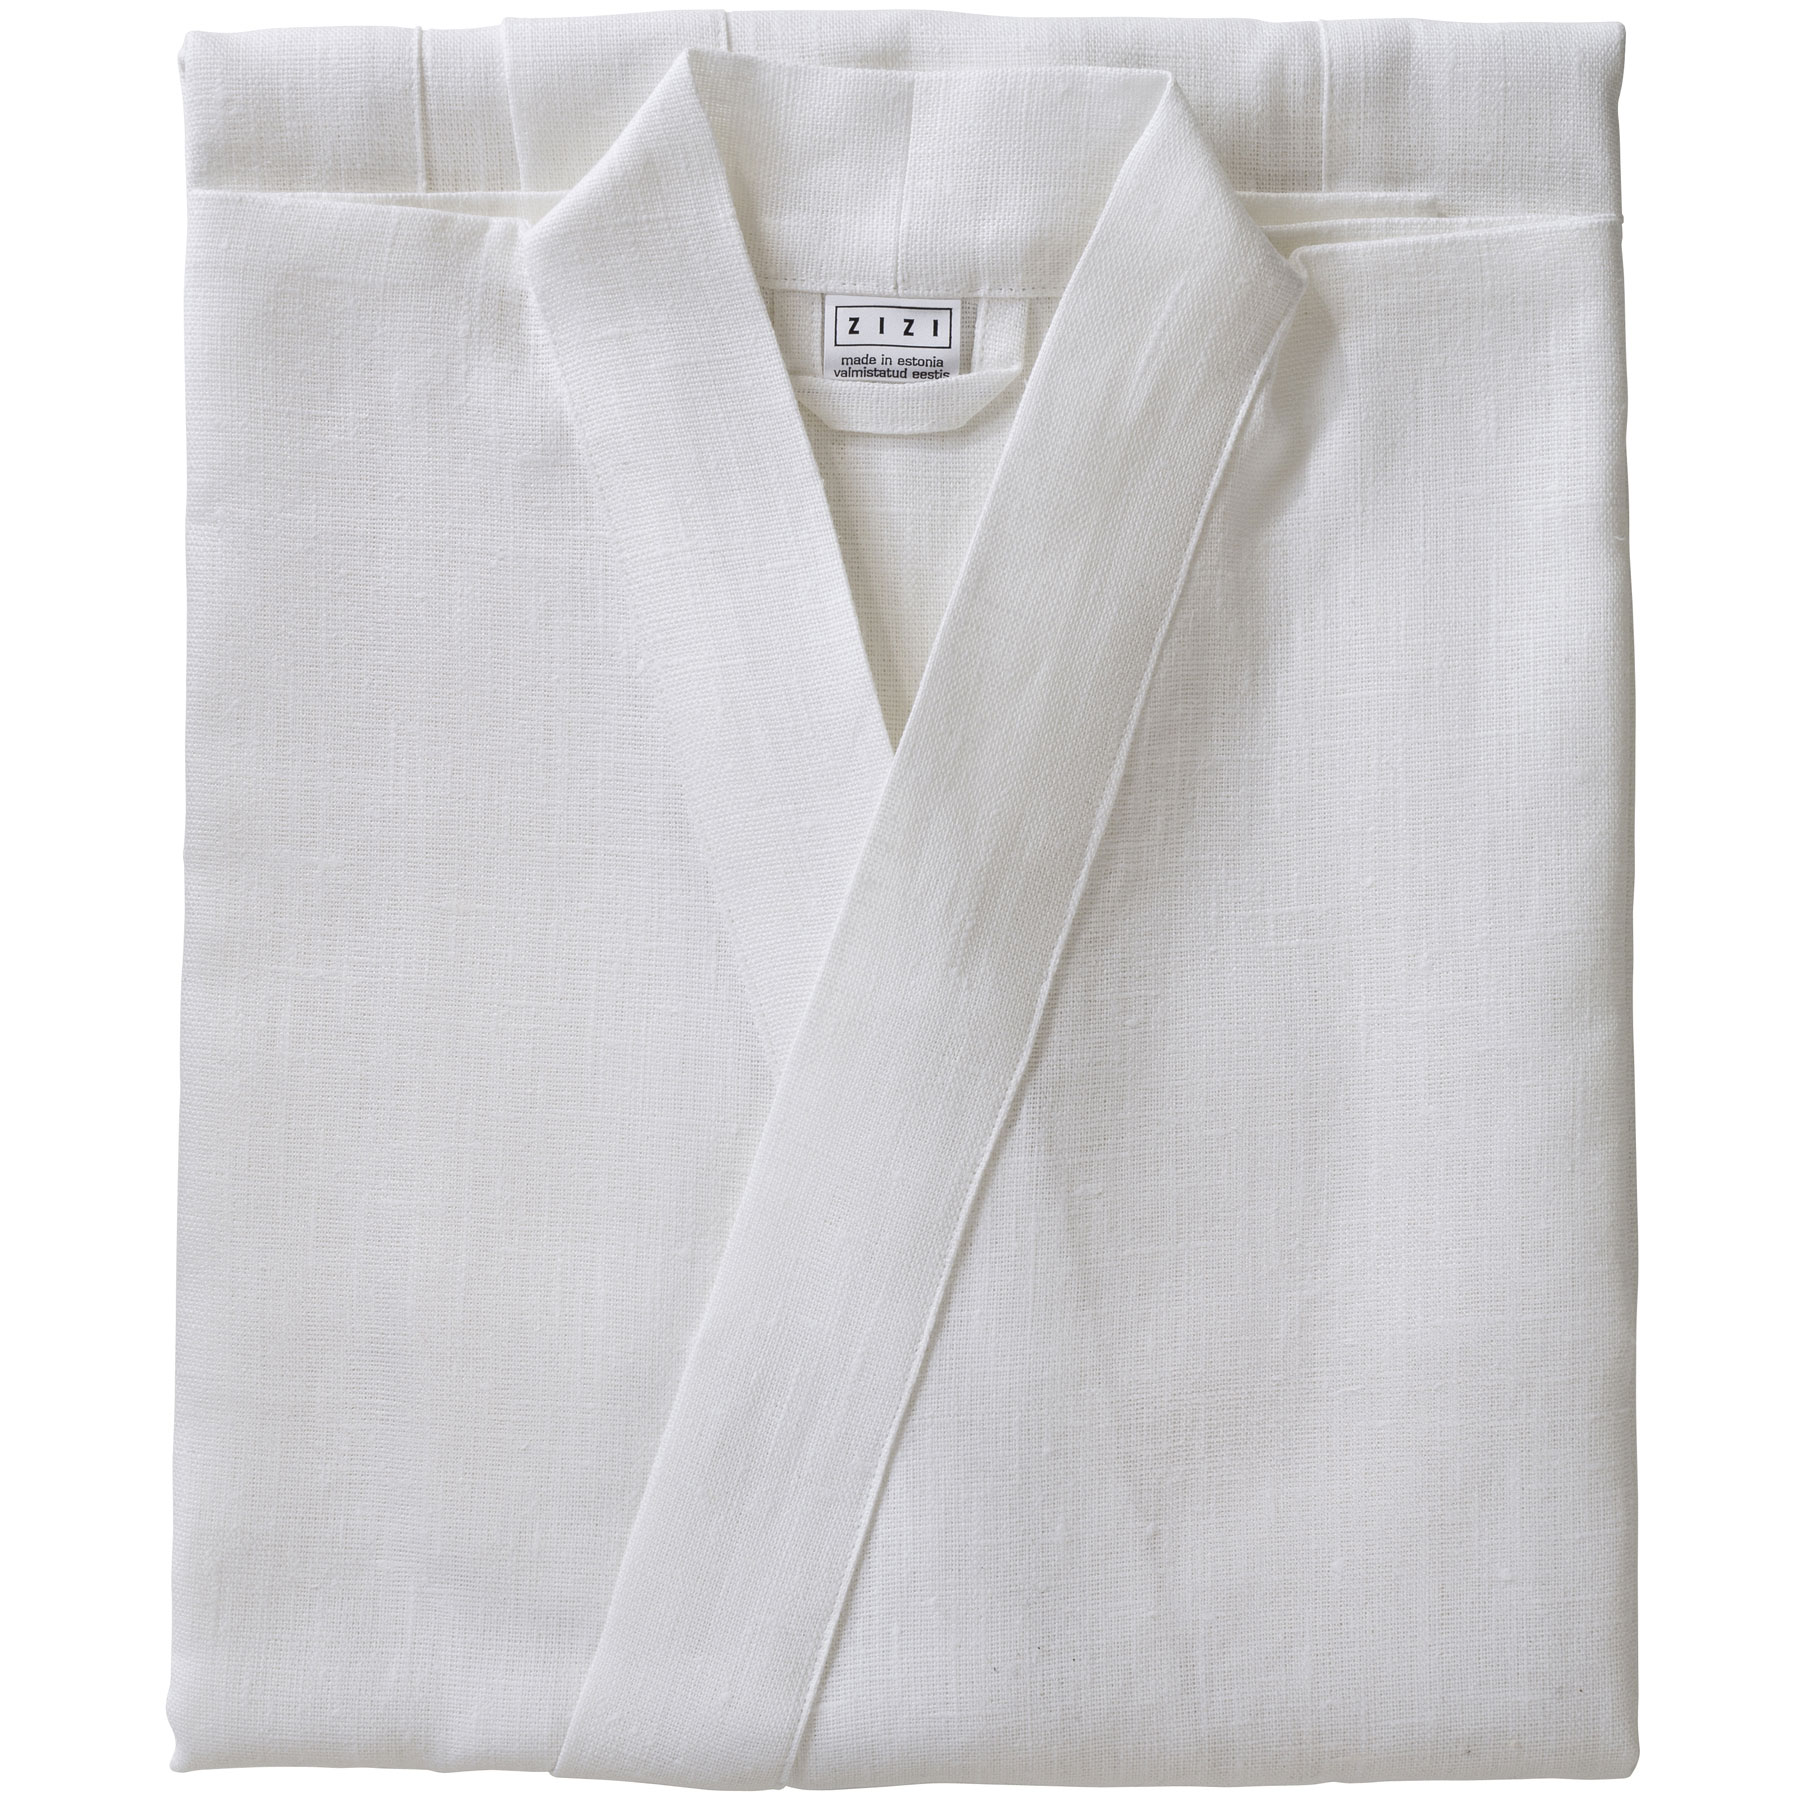 BATHROBE PLAIN <br />white